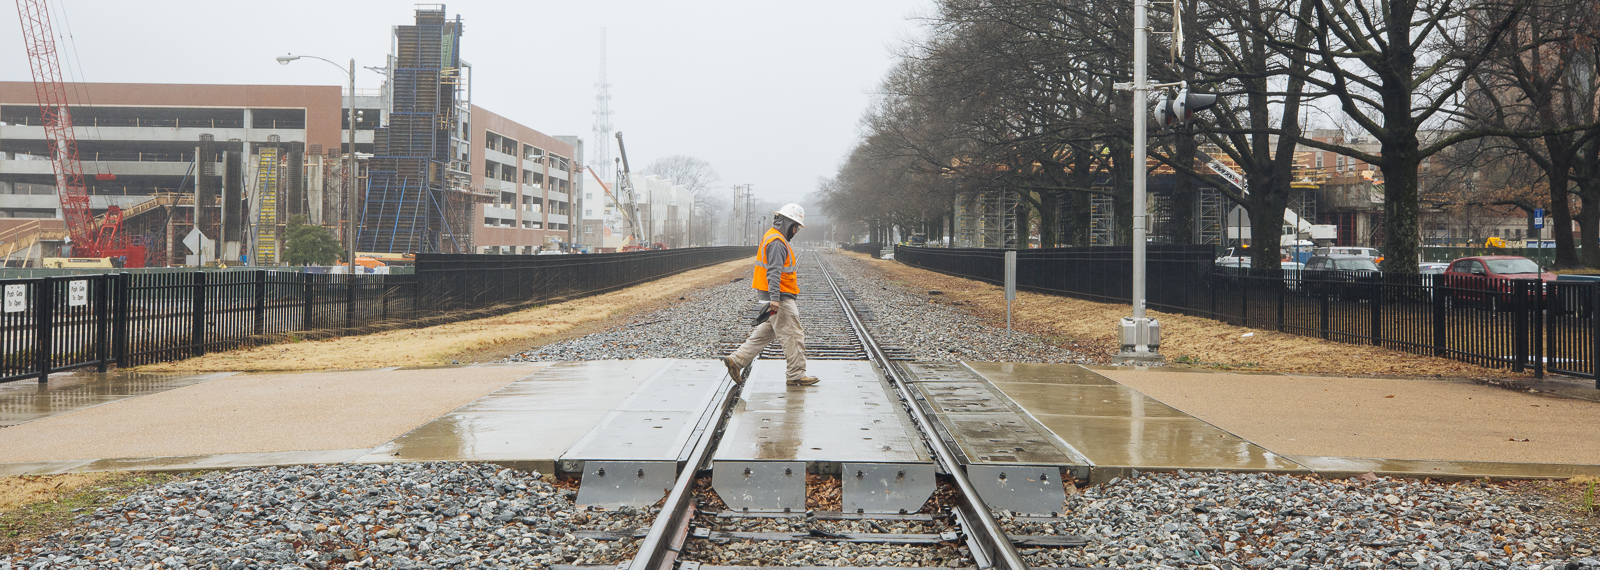 A construction worker crosses the railroad tracks at the University of Memphis with the pending pedestrian under construction in the far background. (Ziggy Mack) <span class=&apos;image-credits&apos;></span>